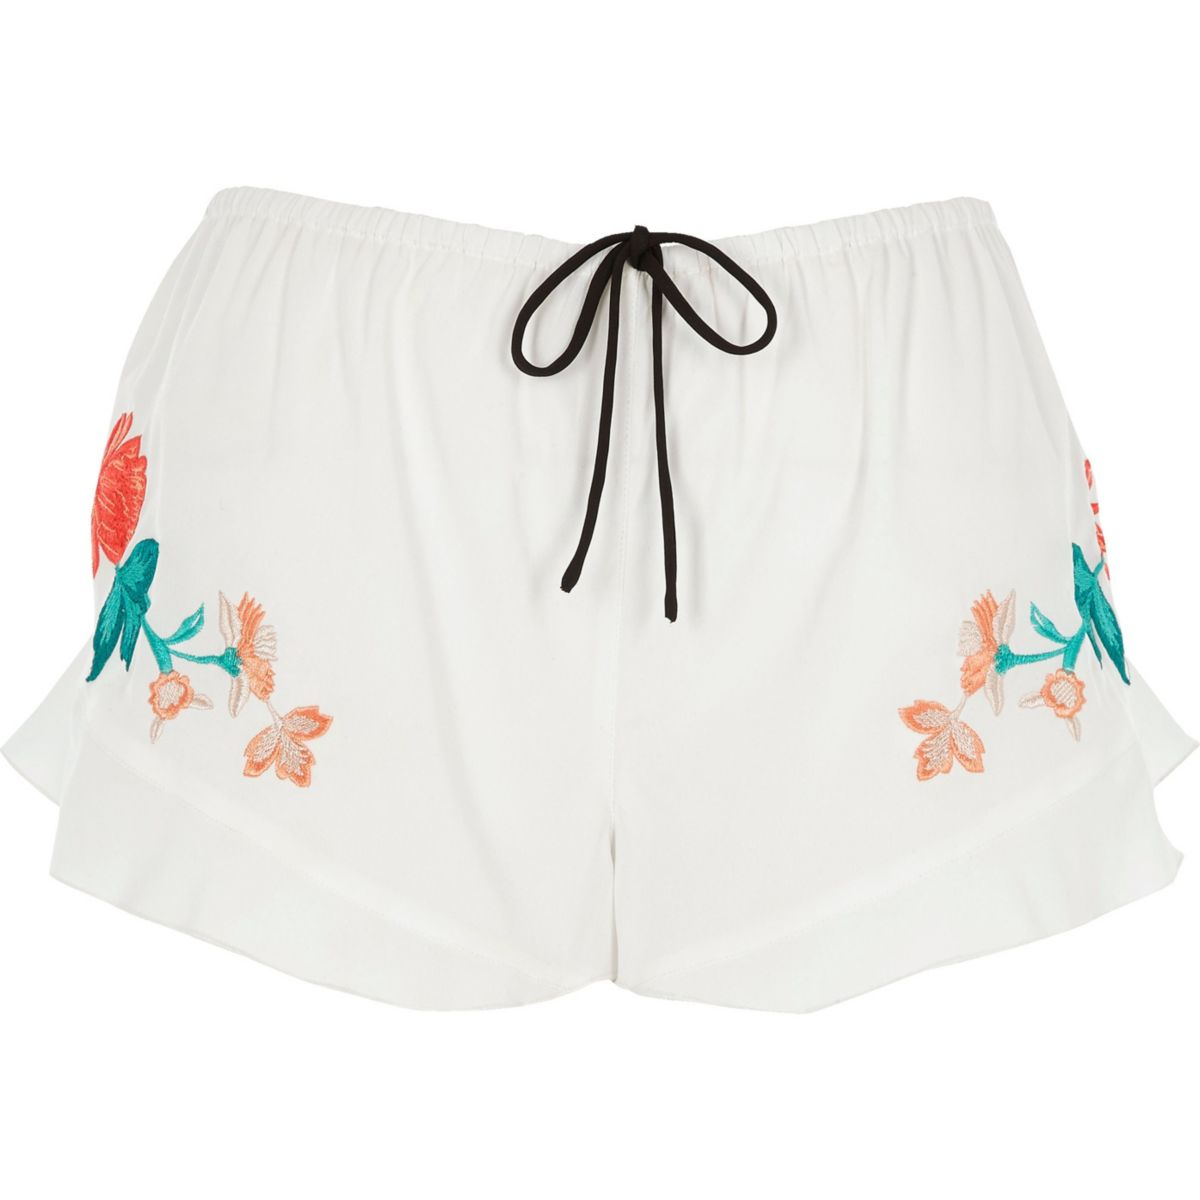 White floral embroidered frill pyjama shorts